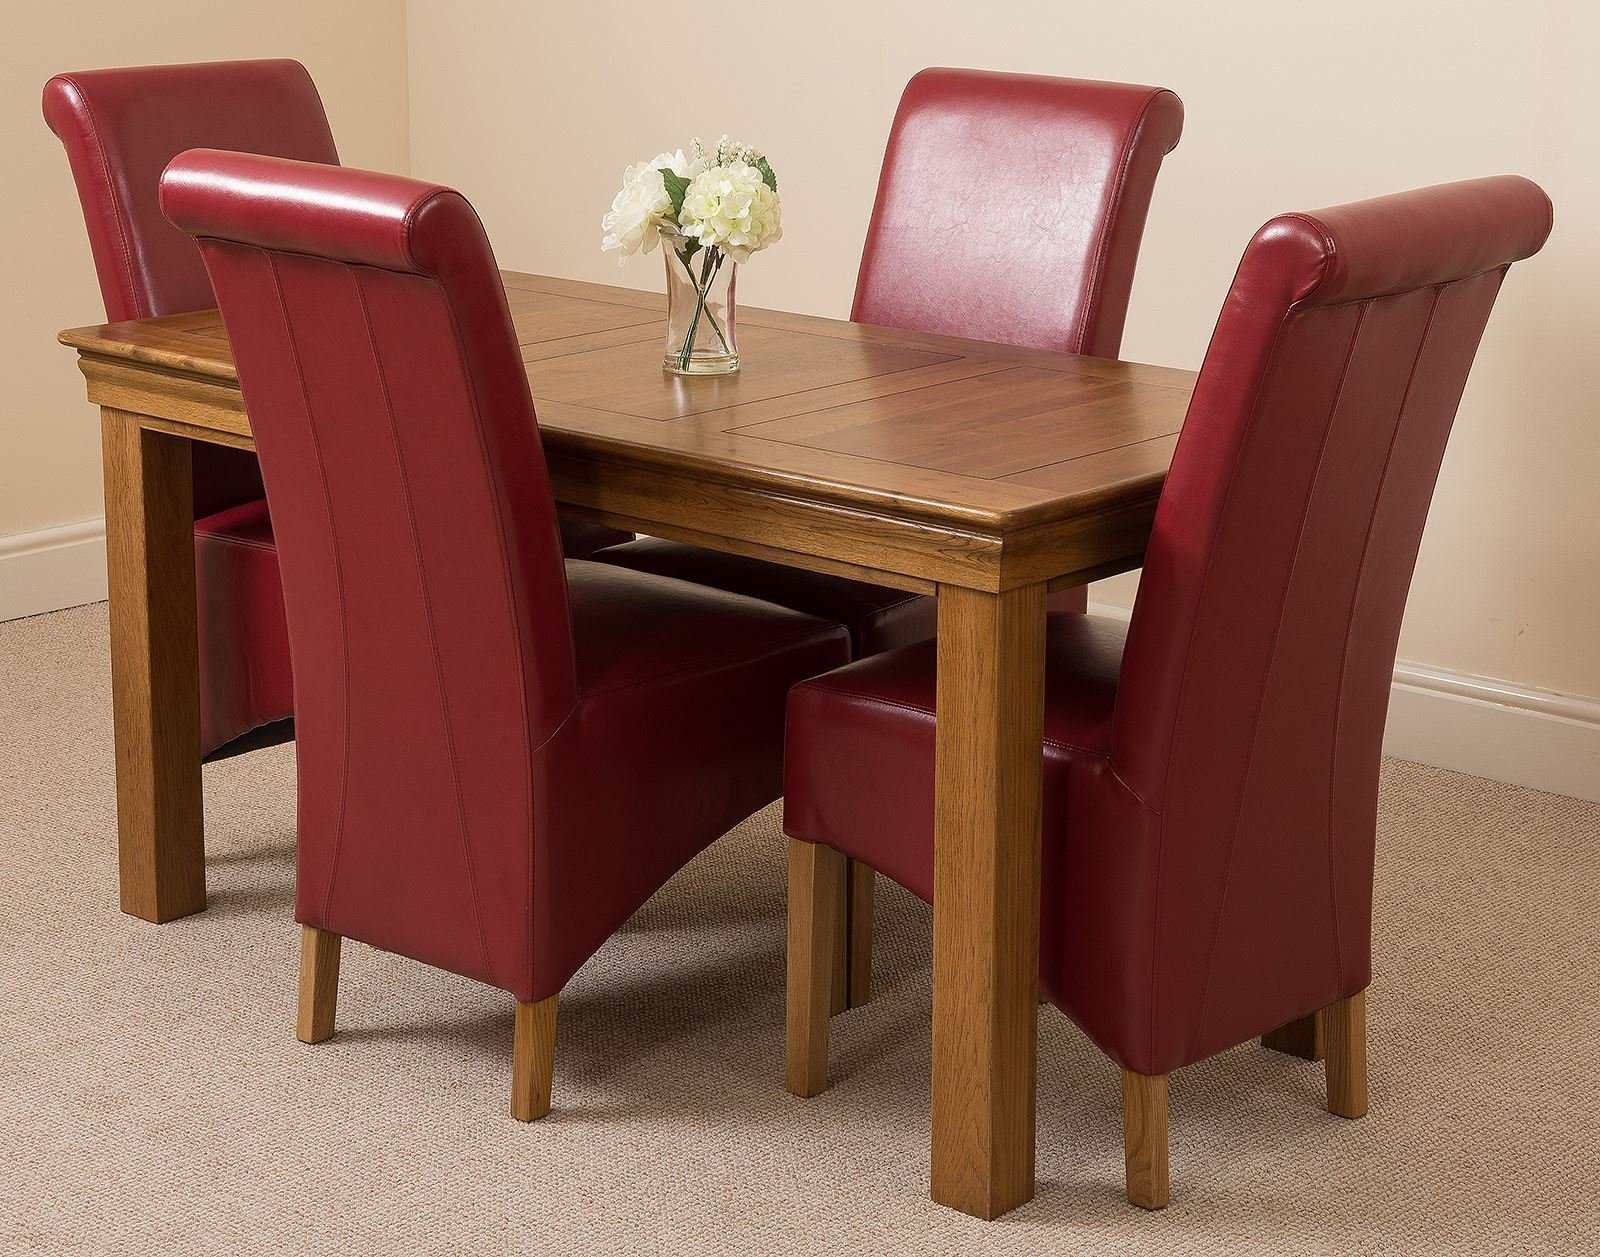 81G1mVKwCVL - French Rustic Solid Oak 150 cm Dining Table with 4 or 6 Montana Dining Chairs